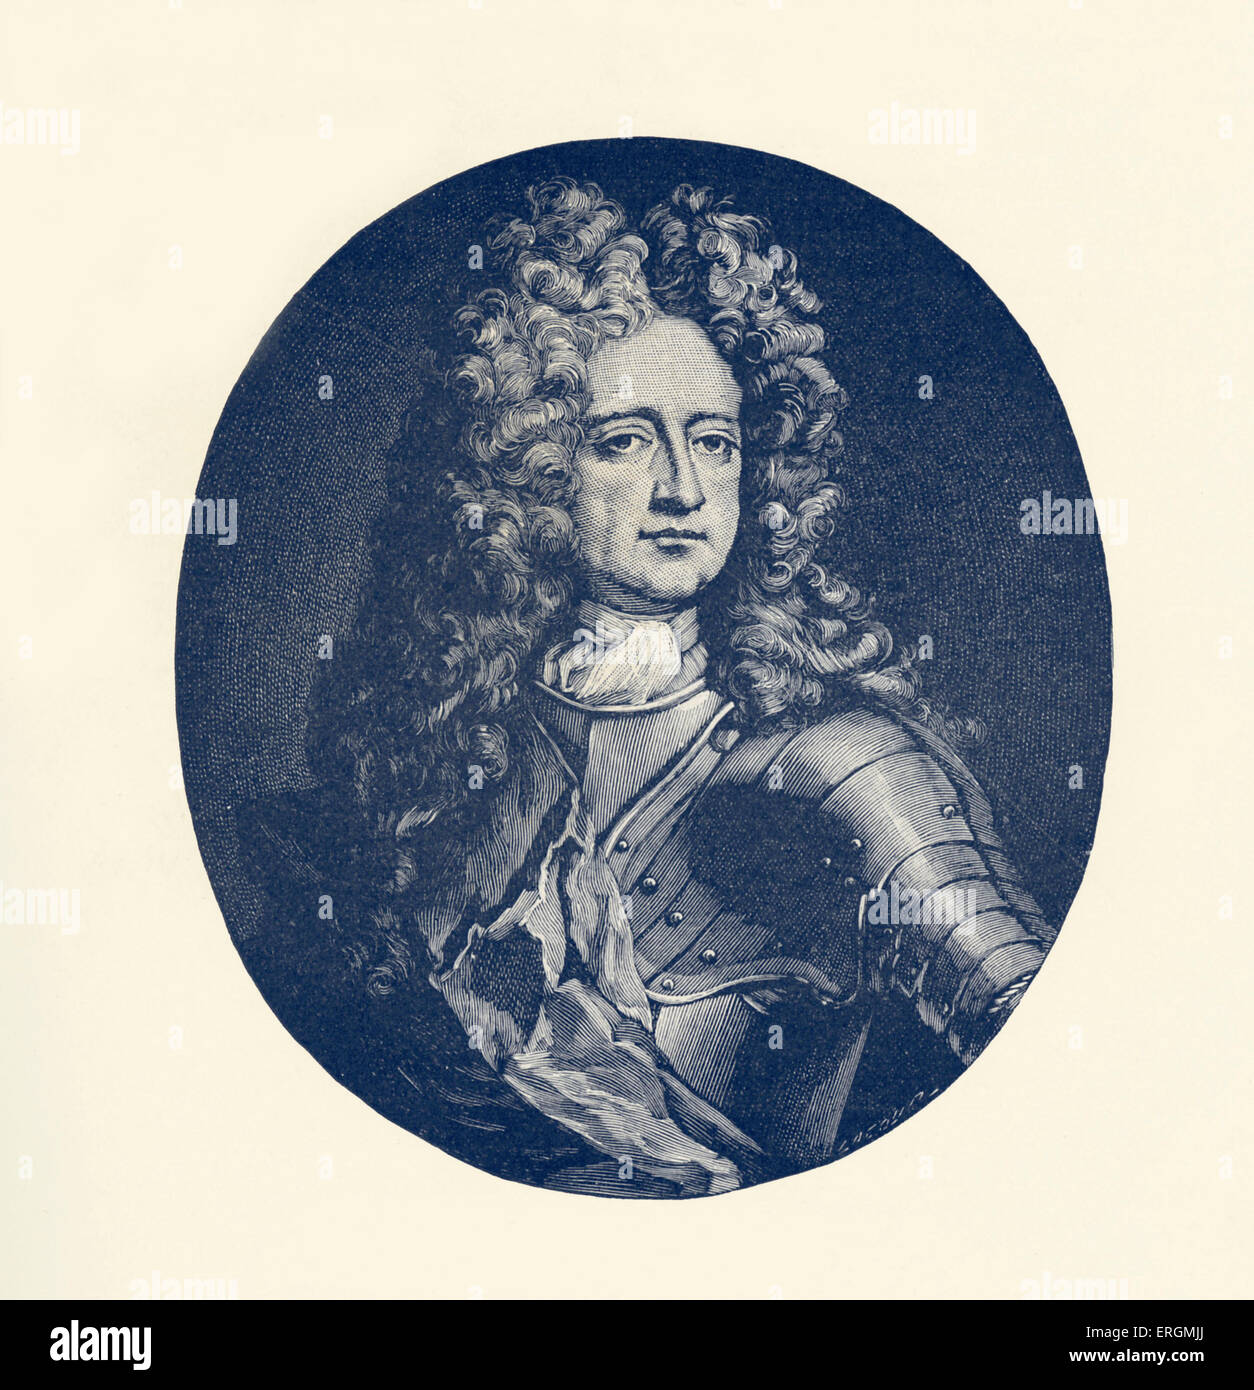 Charles Mordaunt, 3rd Earl of Peterborough (1658-1735) was an English nobleman and military leader. Stock Photo